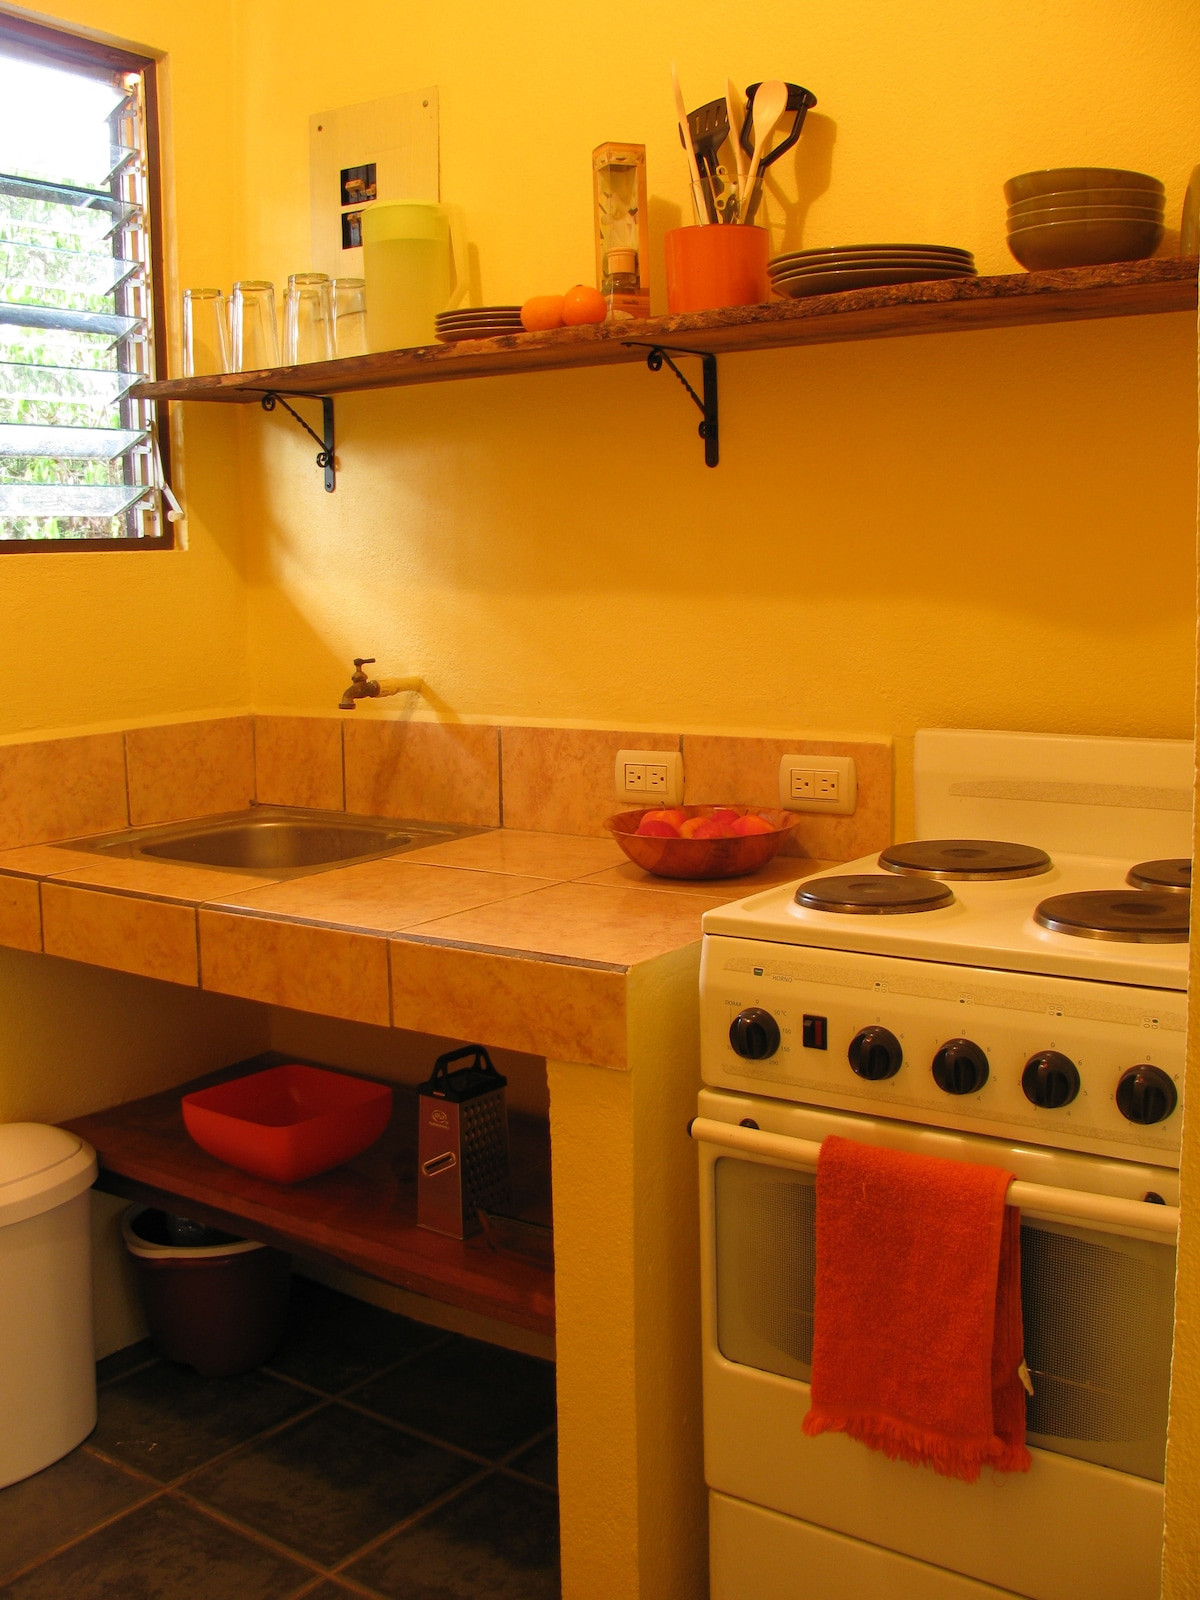 Kitchen includes full stove/oven, full fridge/freezer and all kitchenware.